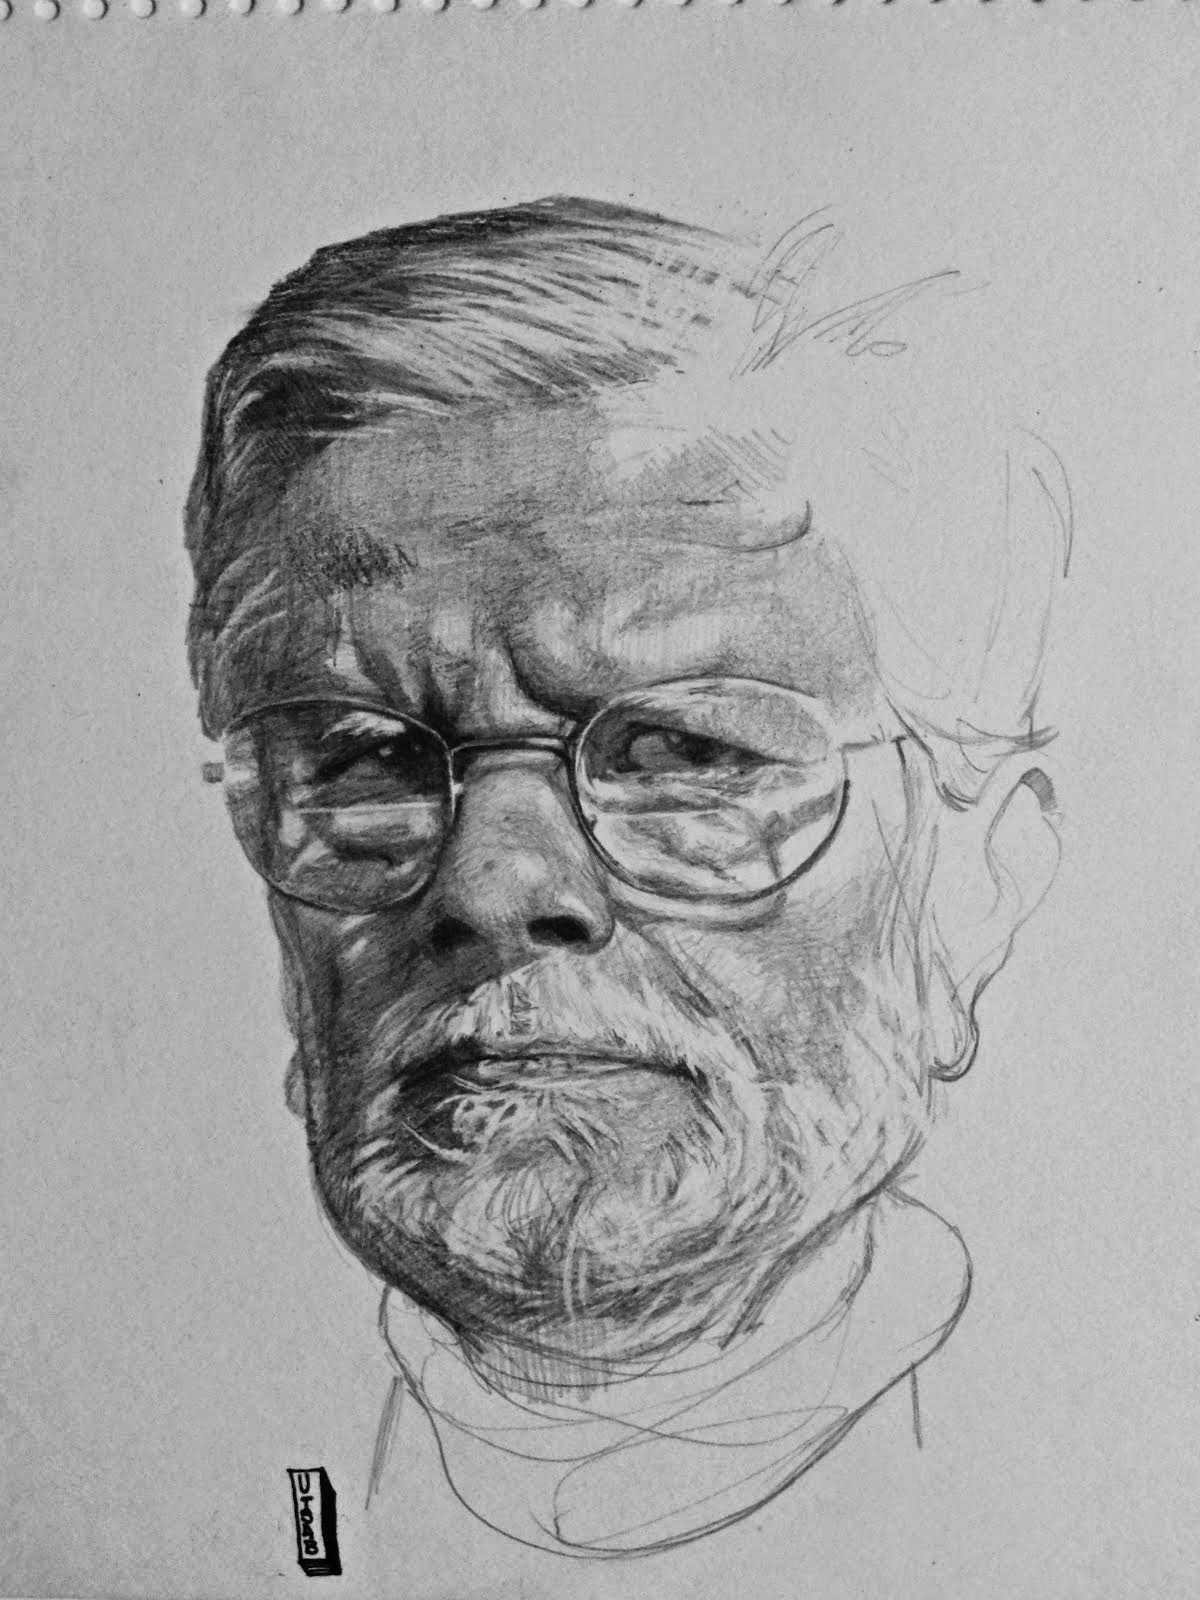 Malay Roychoudhury drawn by Utsab Chatterjee